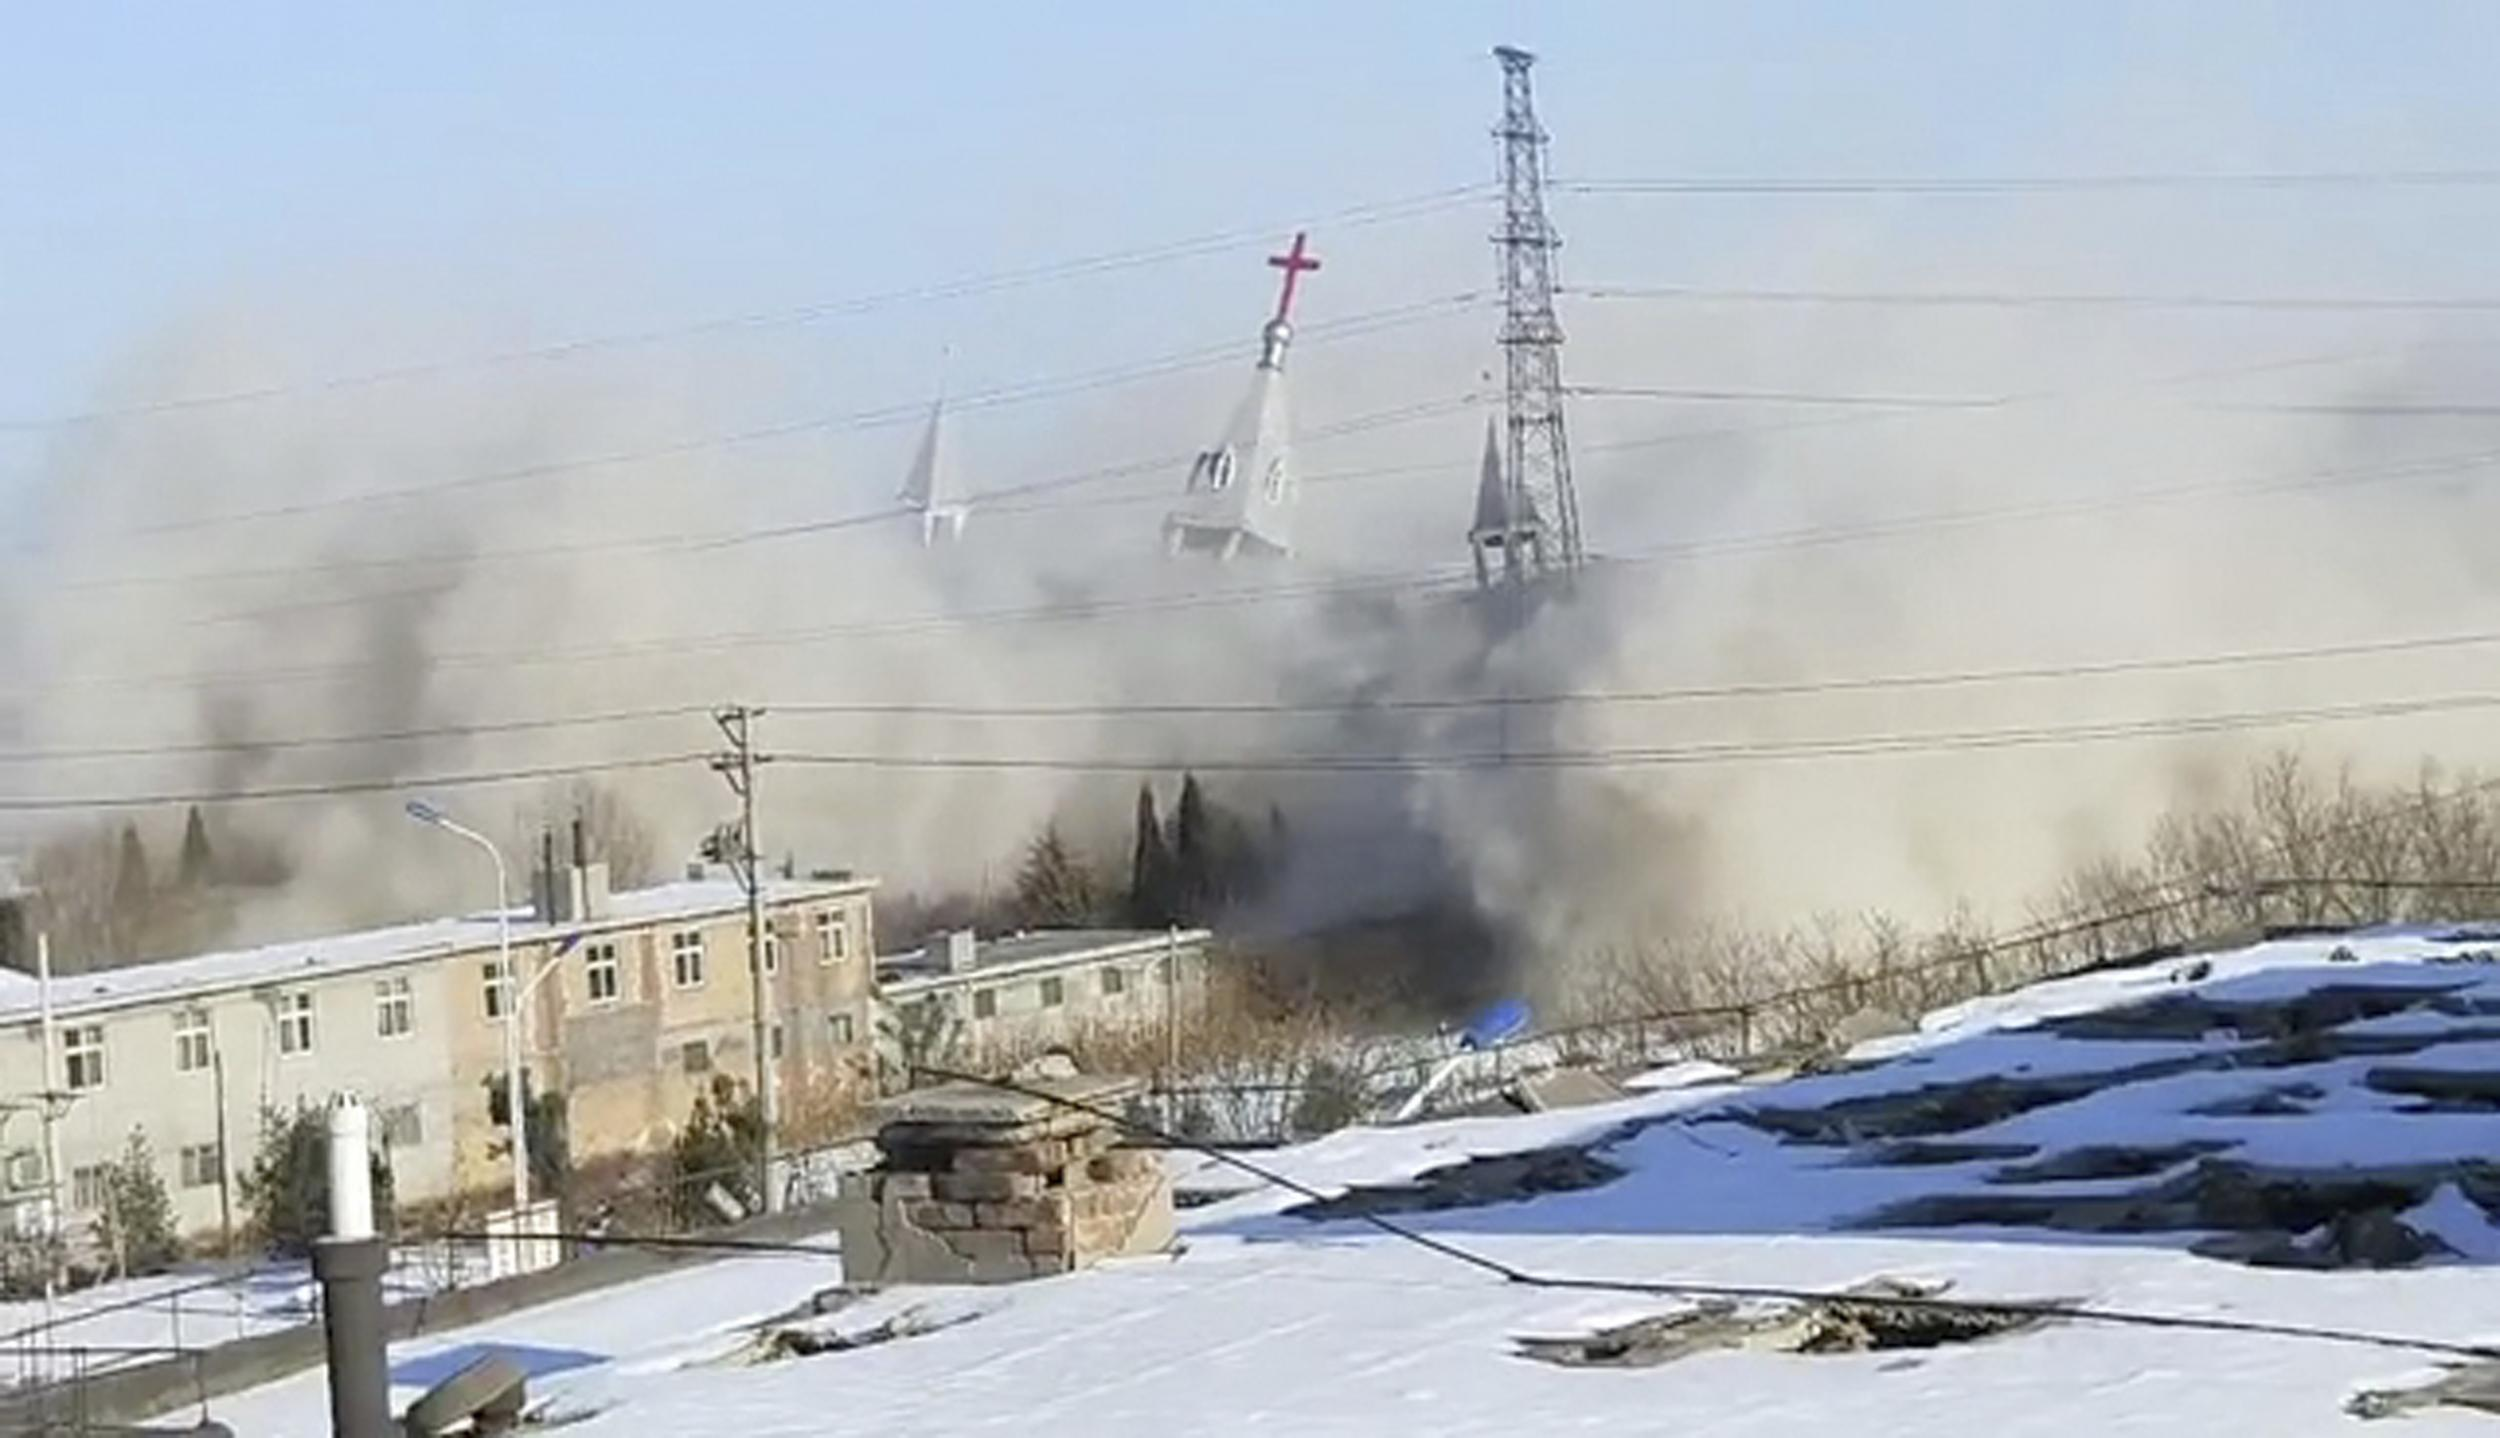 Chinese authorities blow up Christian megachurch with dynamite